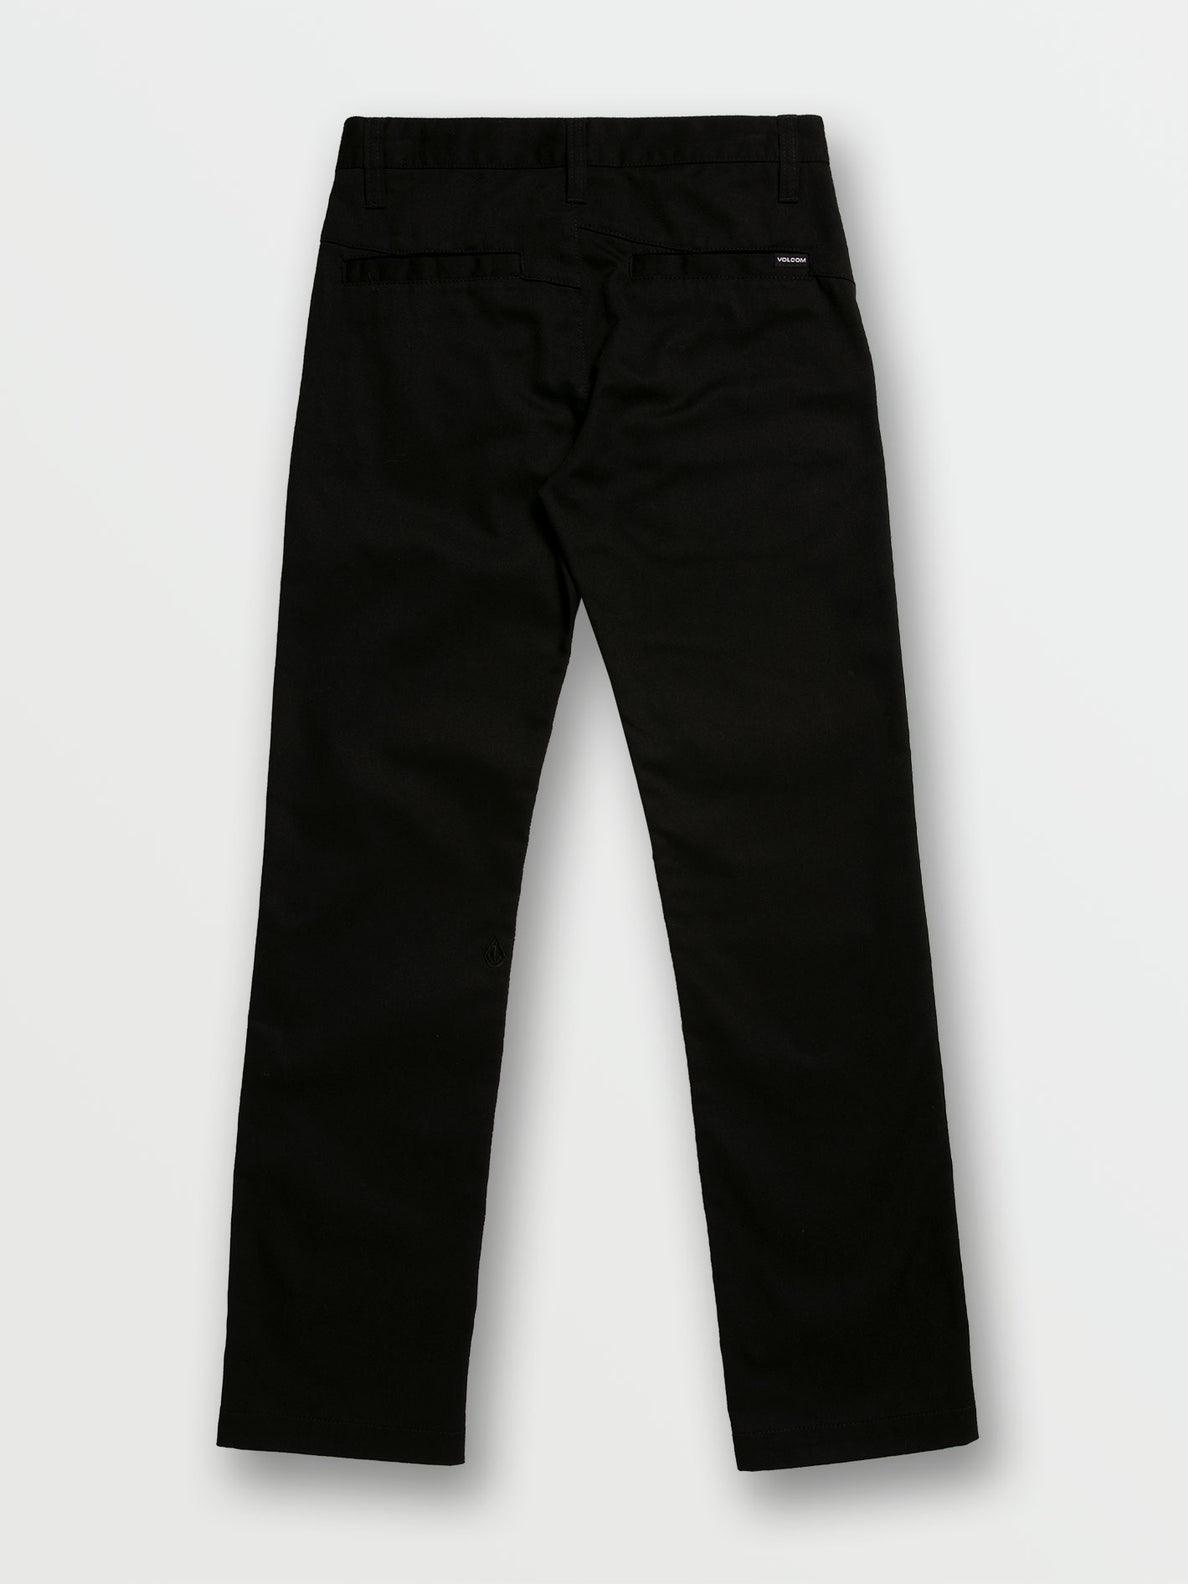 Big Boys V2monty Pants - Black (C1101903_BLK2) [B]